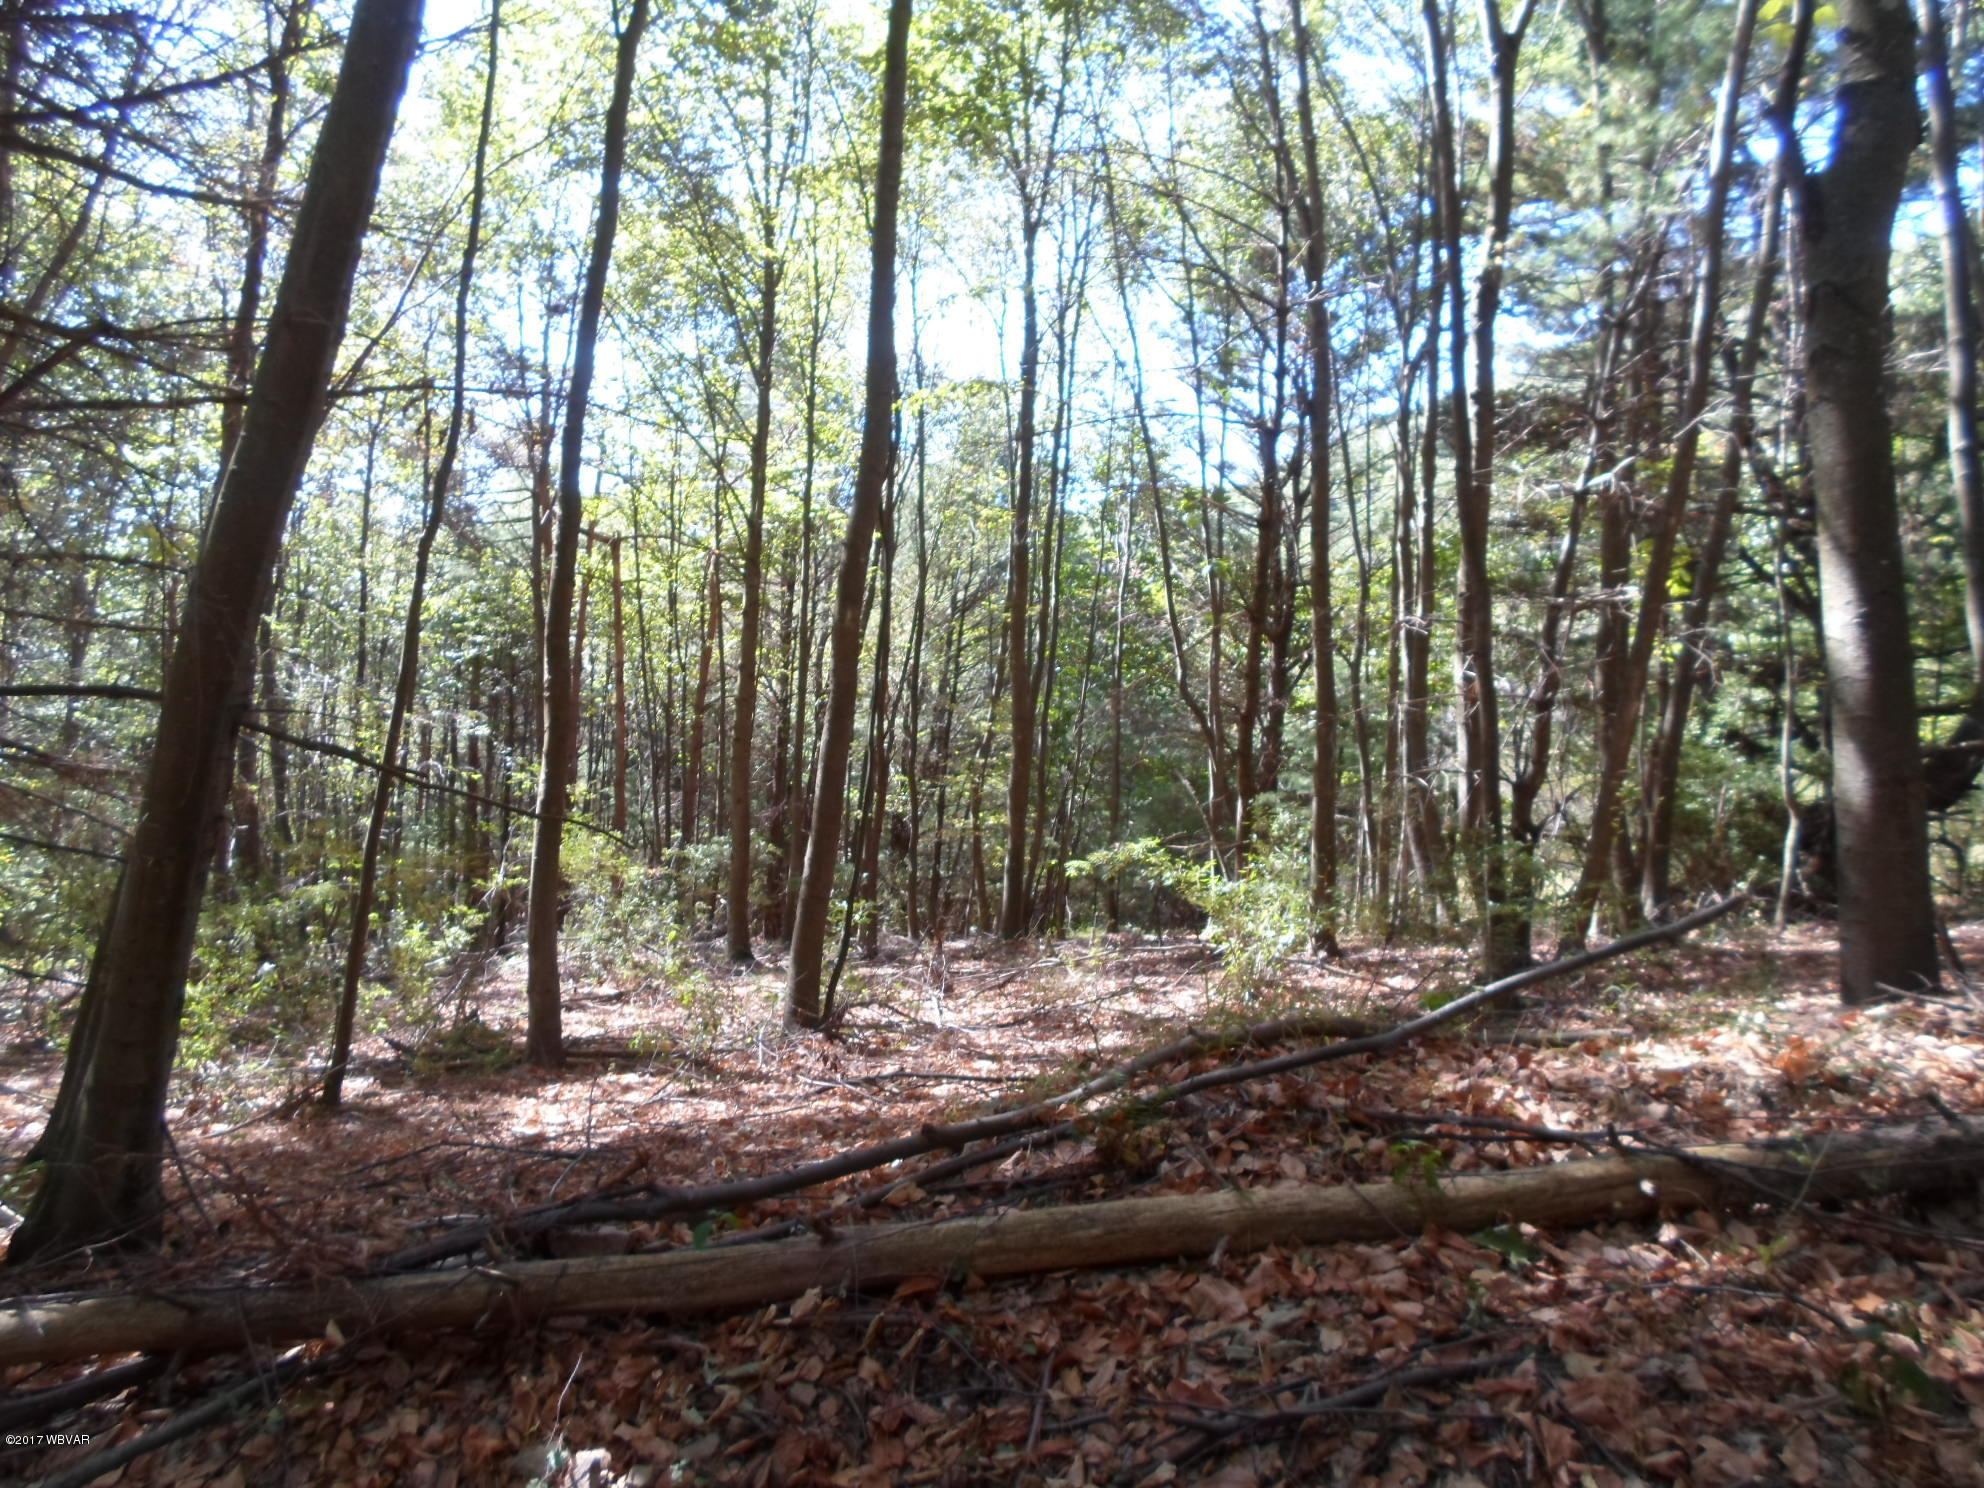 0 FIRST FORK ROAD, Jersey Shore, PA 17740, ,Land,For sale,FIRST FORK,WB-82325